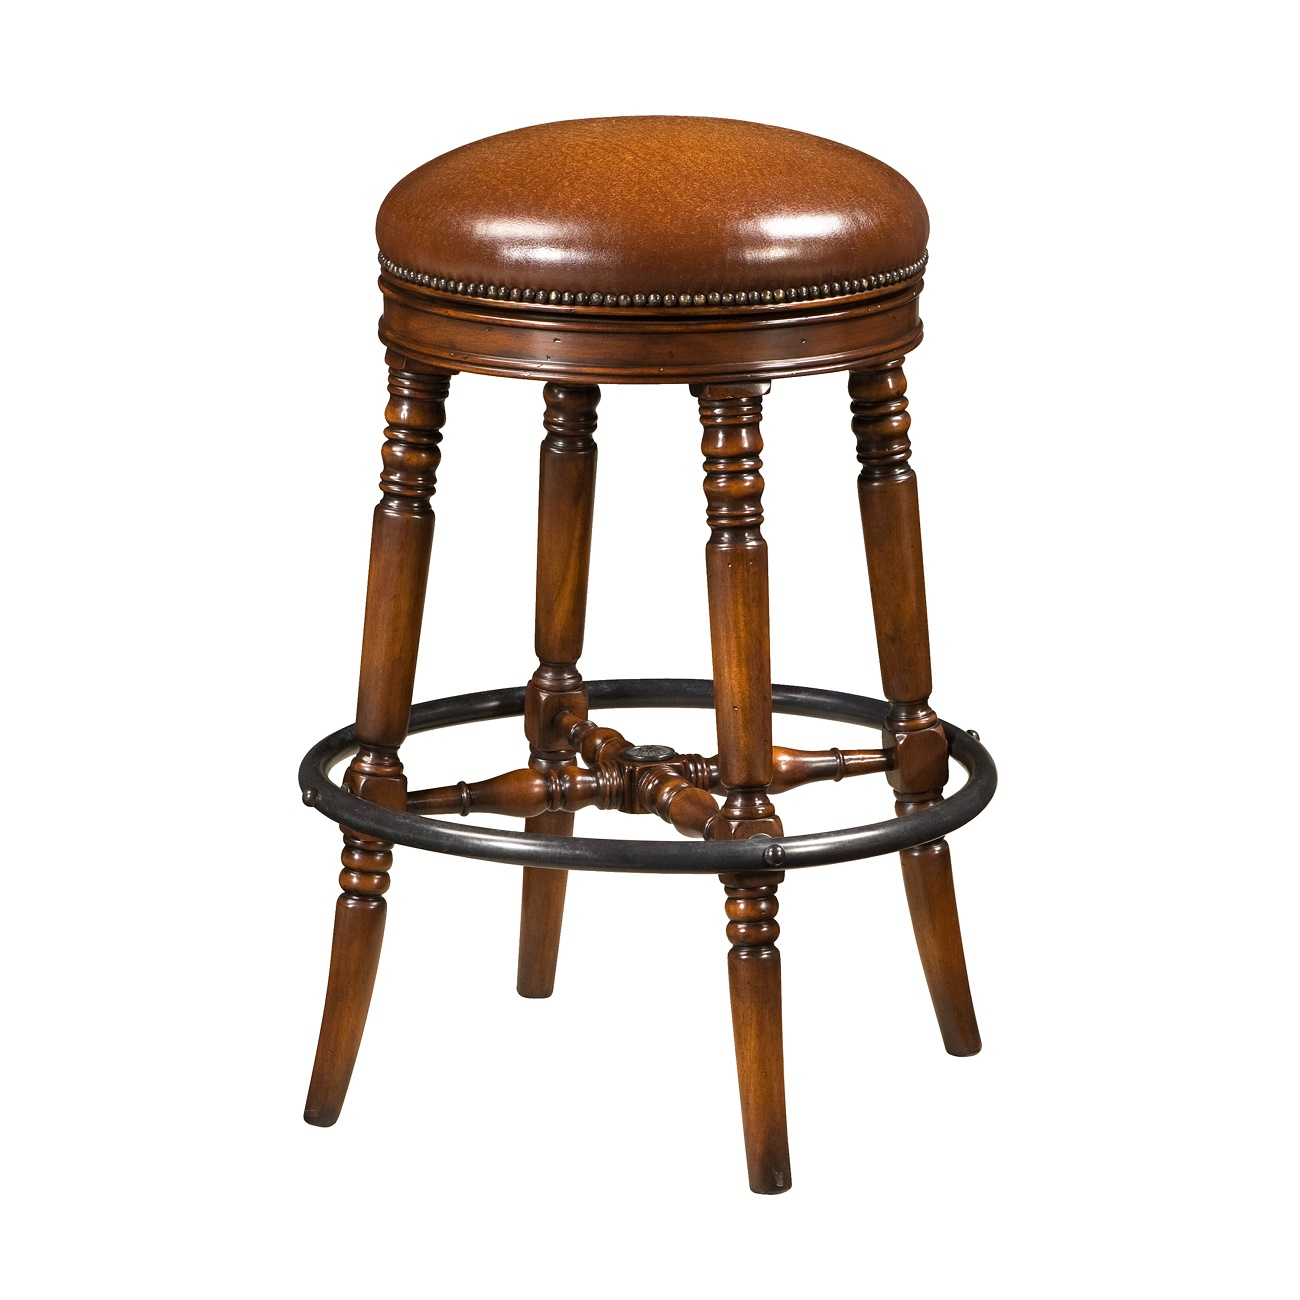 Amongst Friends Bar Stool theodore alexander 4400 140